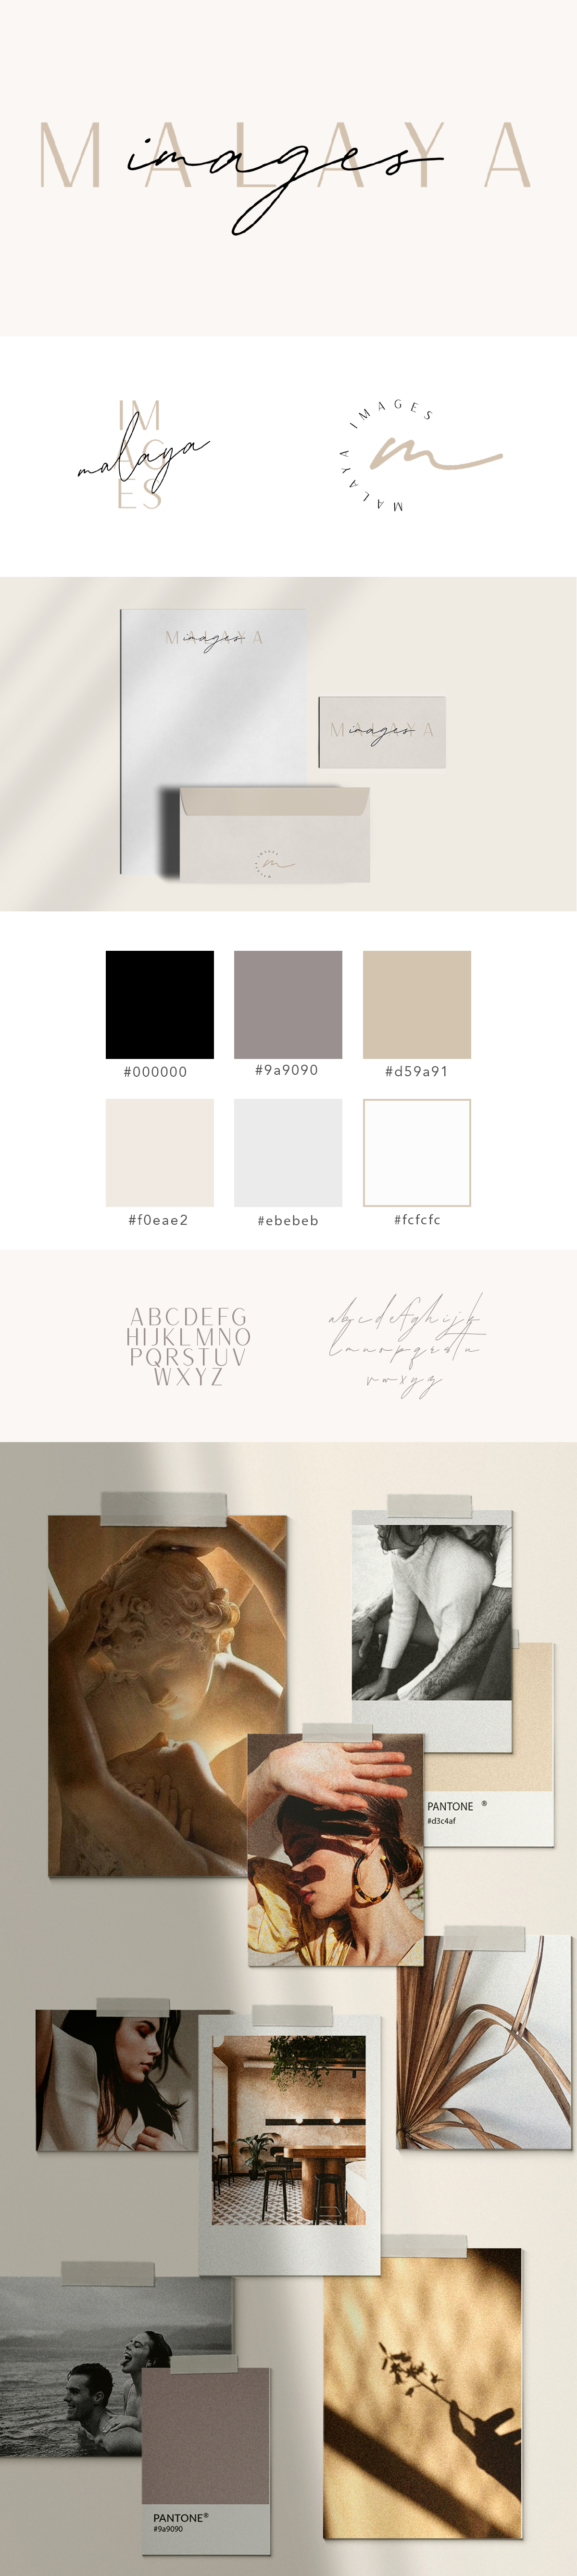 Luxury Brand identity for San Francisco based photographer. Combining minimalist branding, luxurious nude tones, shadow play, and script writing to create high end luxury photographer brand persona.